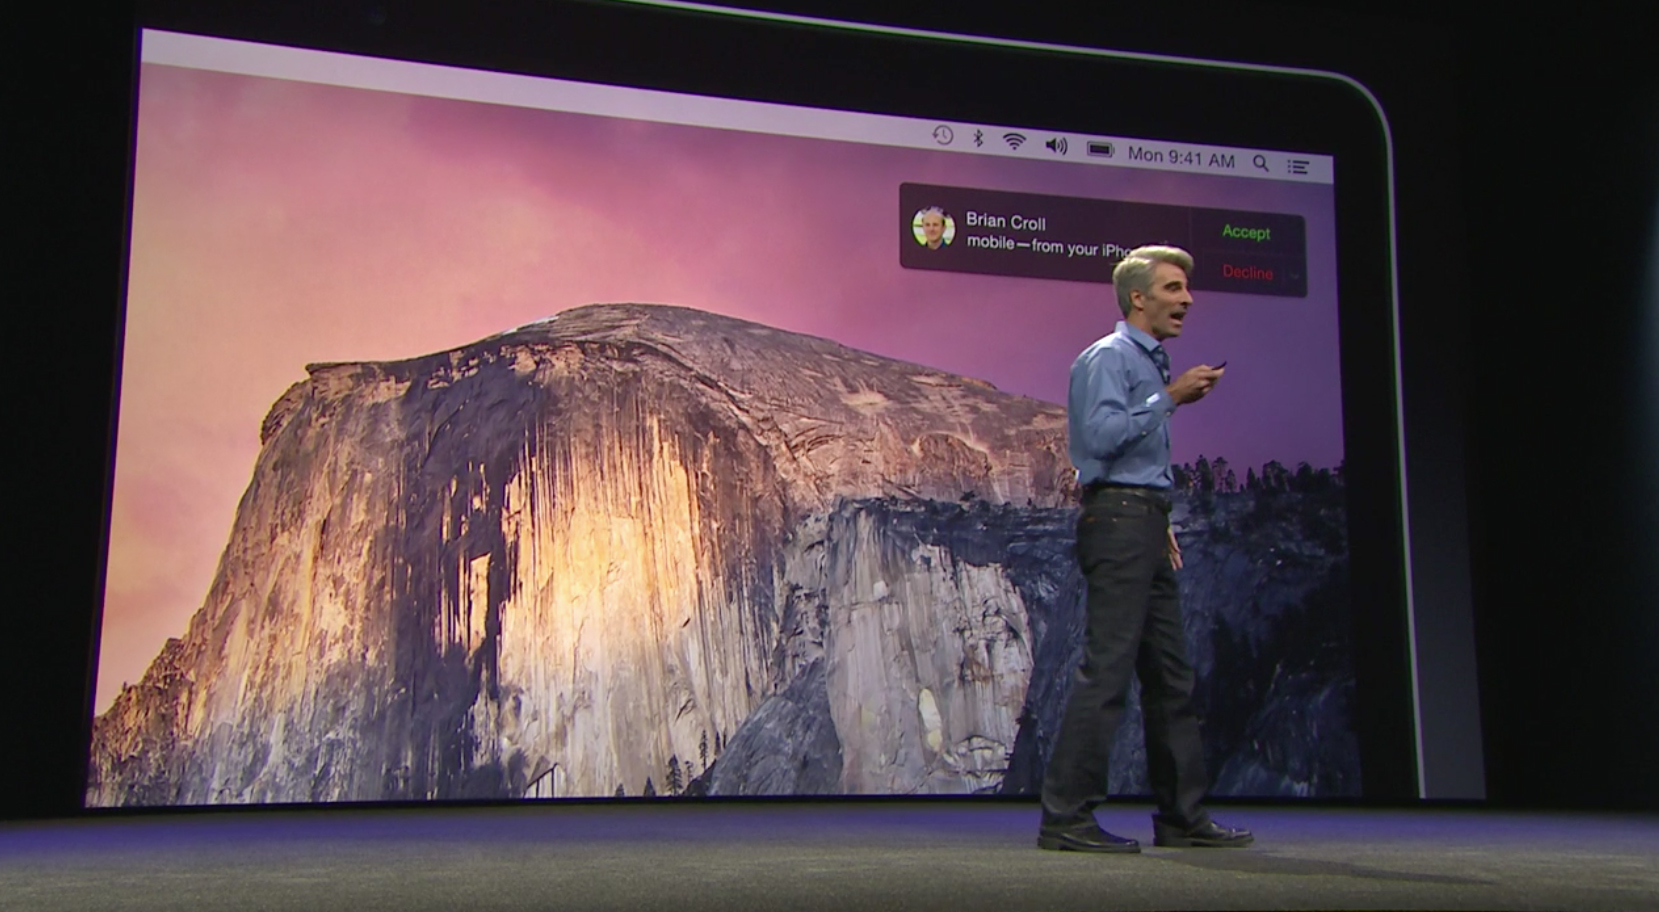 Apple SVP of software engineering Craig Federighi makes an iPhone call to Dr. Dre using the Mac as a speakerphone